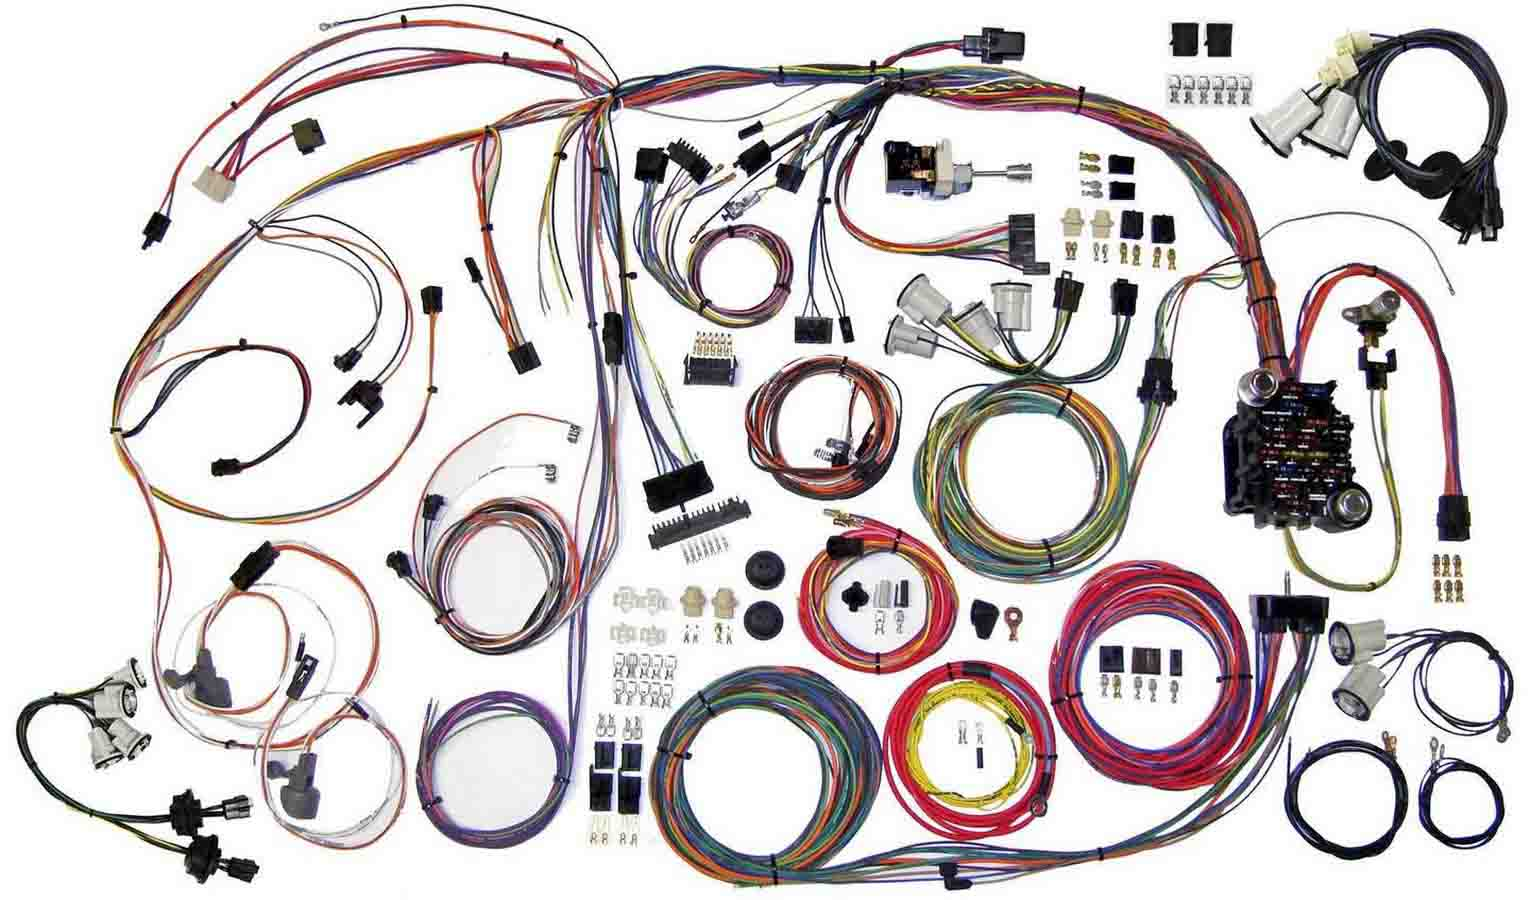 Shop For American Autowire Arob Performance Parts 1961 Corvette Wire Harness Routing 70 72 Chevy Monte Carlo Wiring Kit